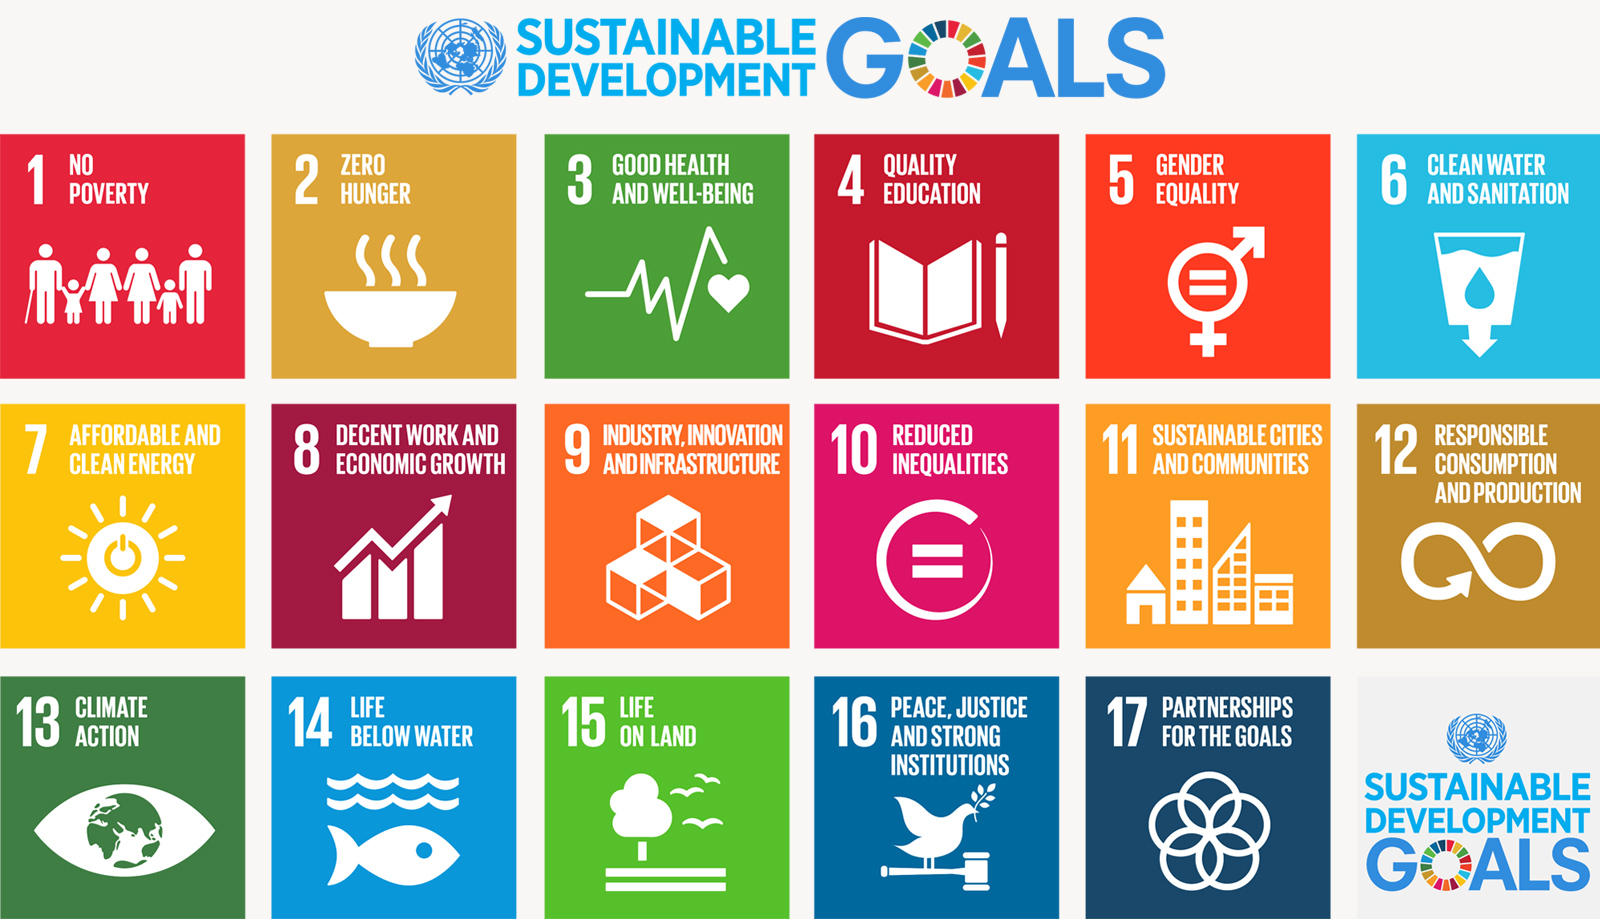 We are still getting familiar with the SDGs